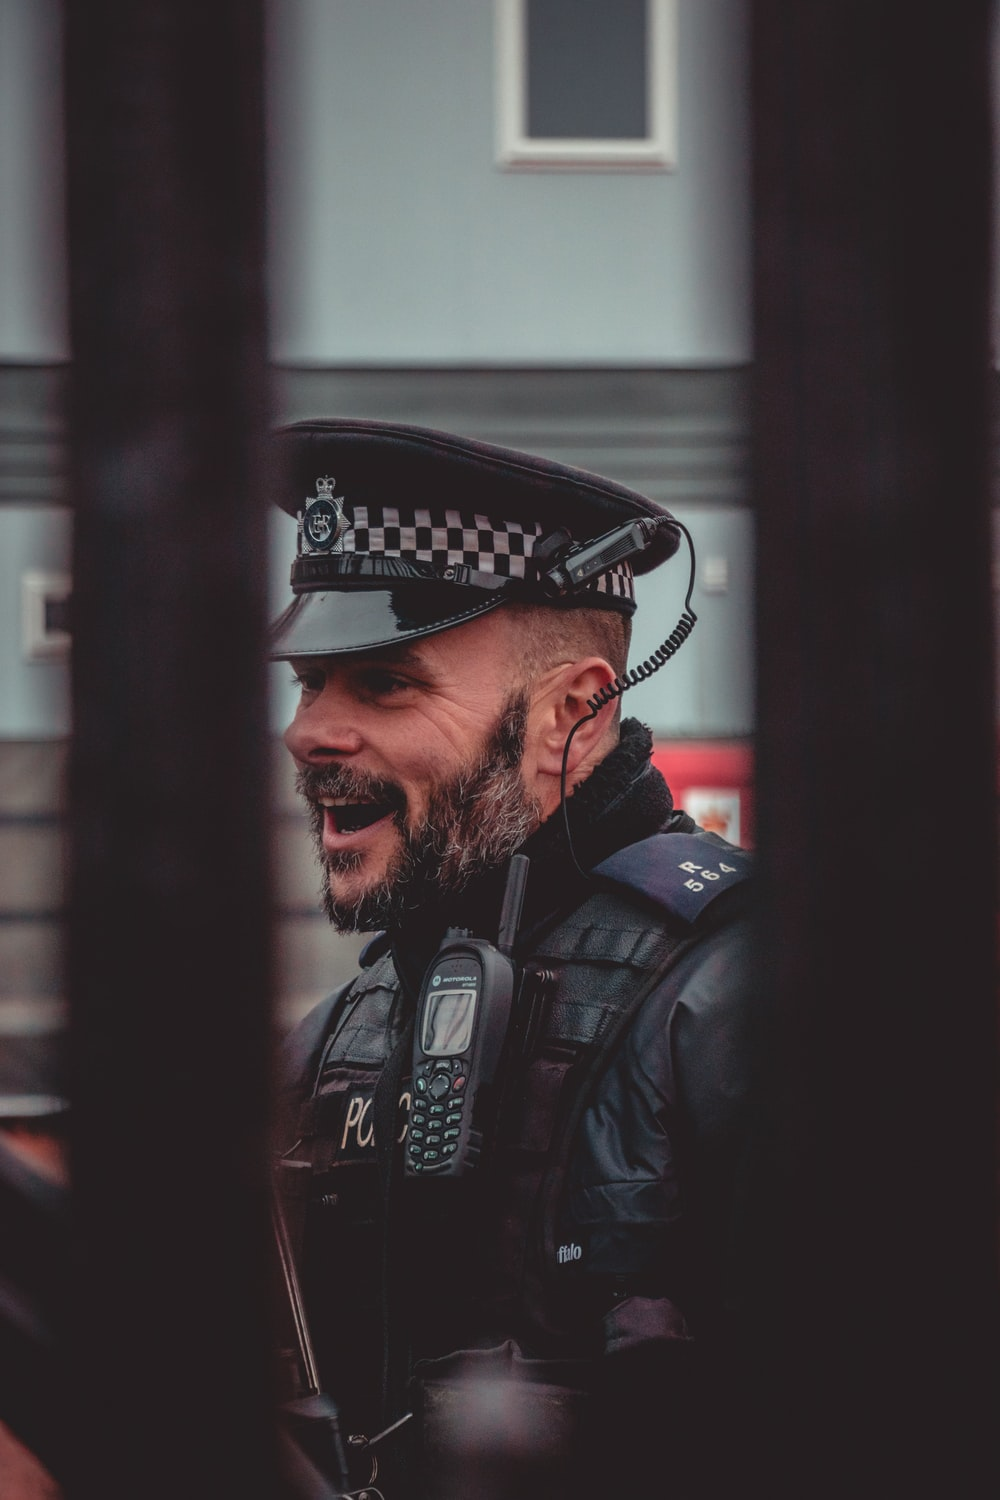 male officer smiling